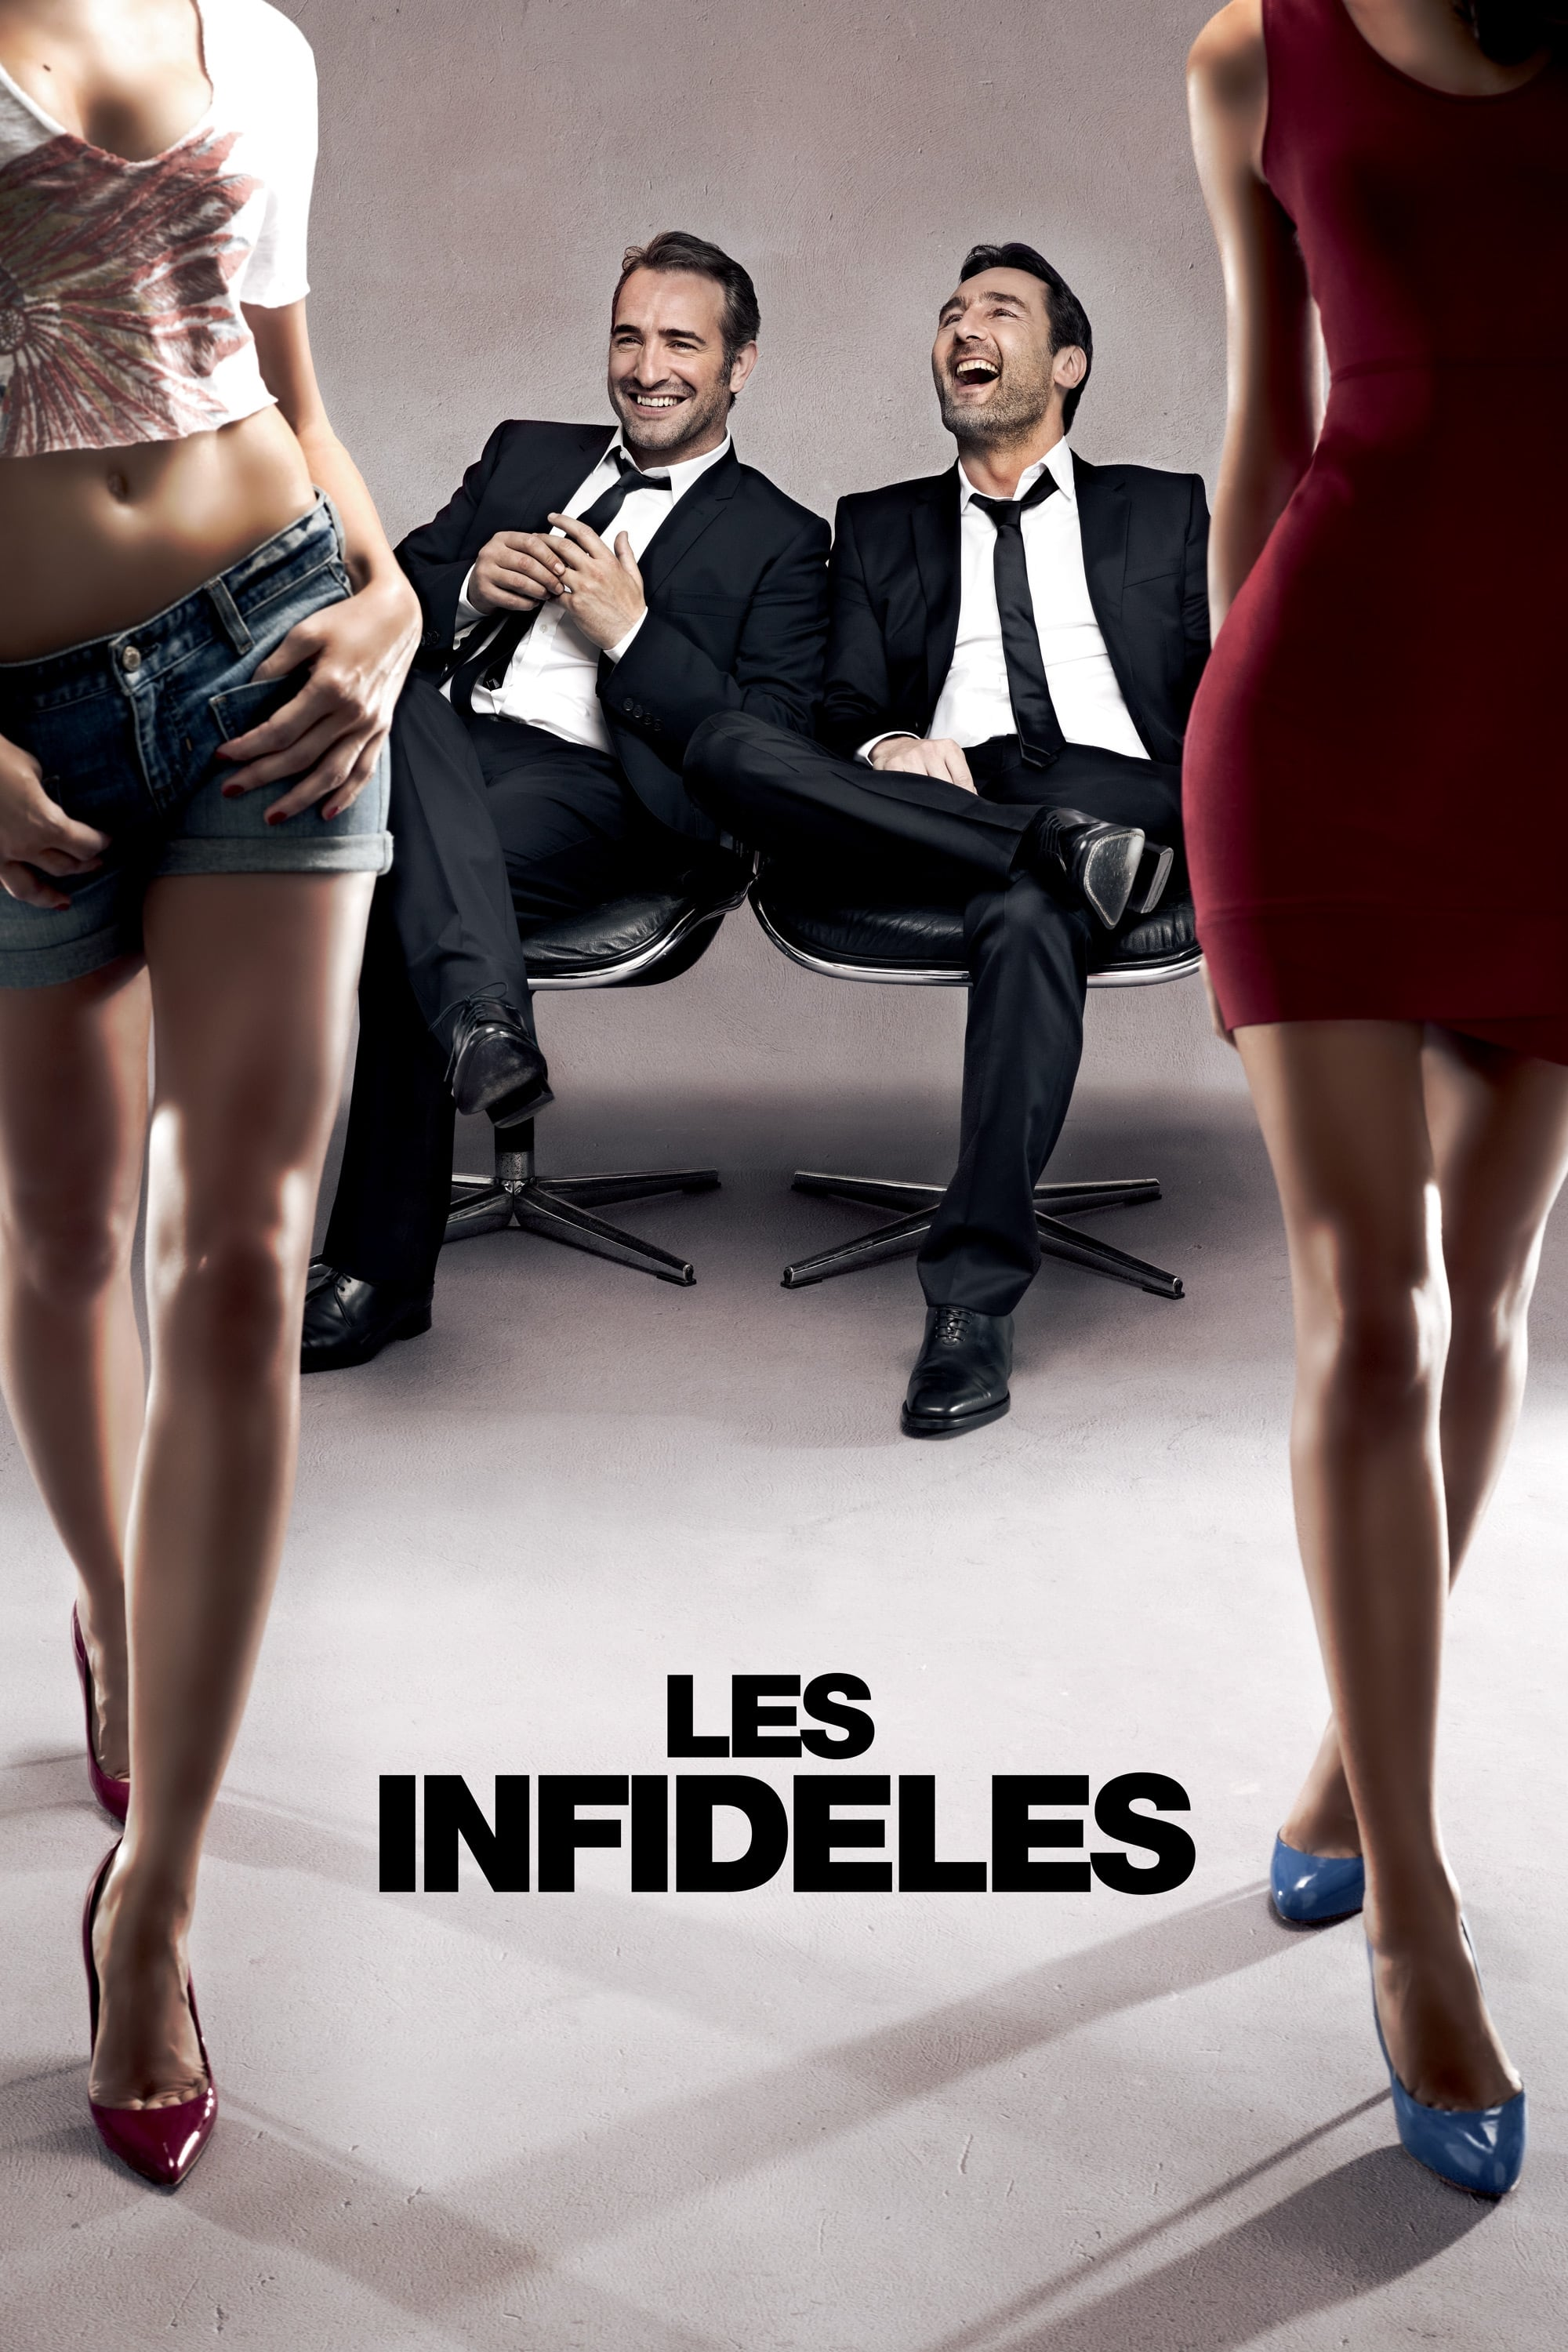 Los Infieles (The Players)